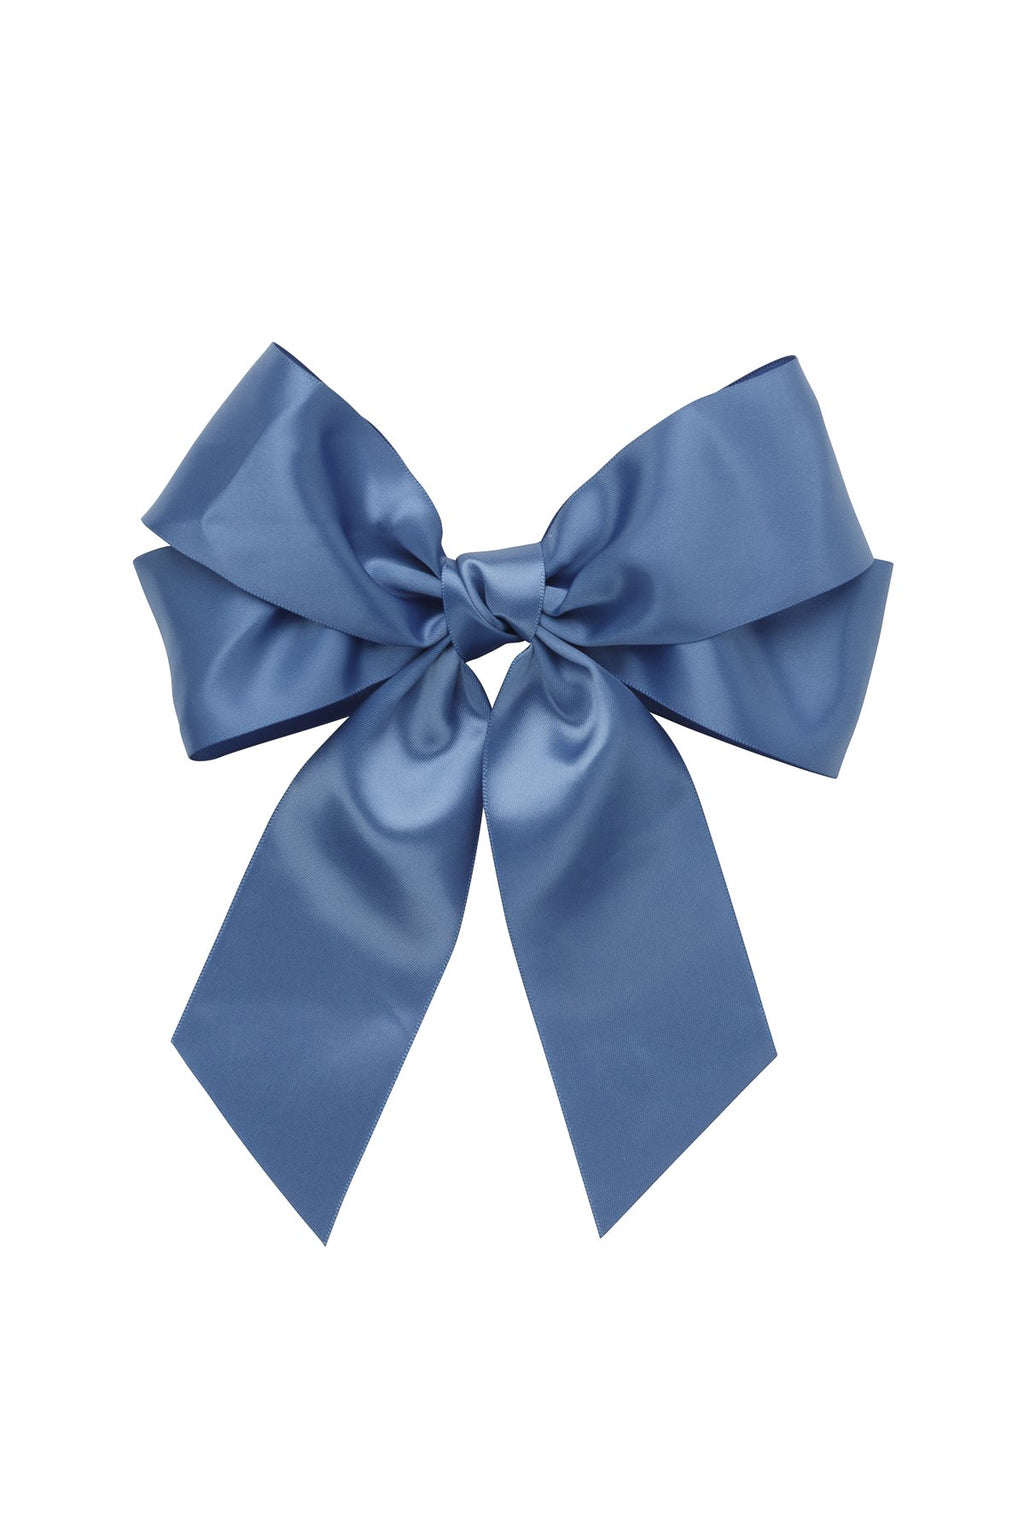 Oversized Bow Pony/Clip  - Smoke Blue - PROJECT 6, modest fashion